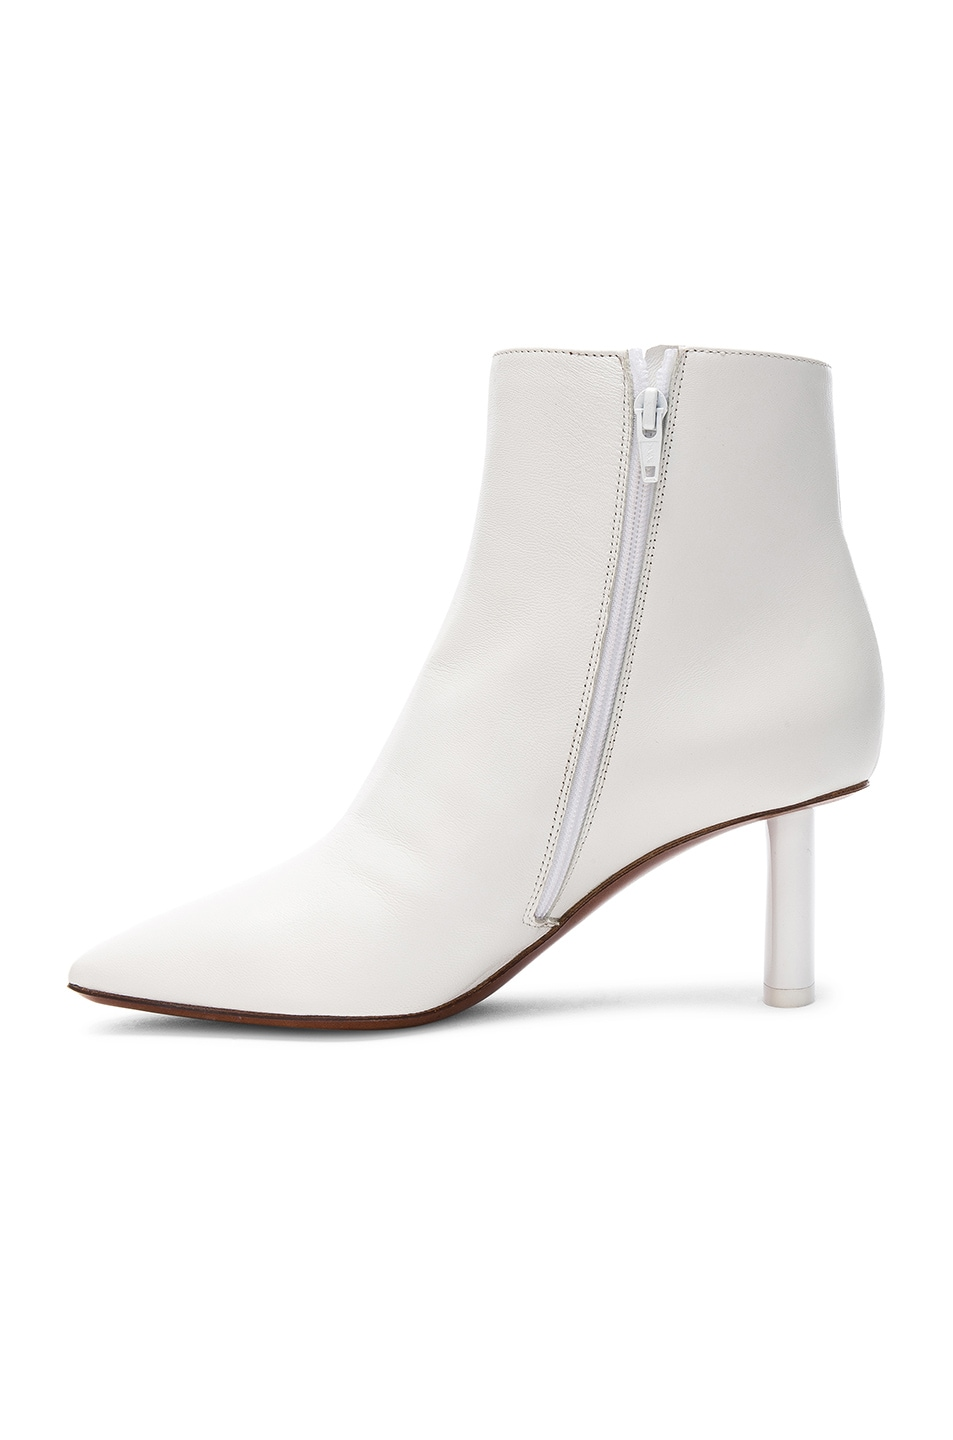 Image 5 of VETEMENTS Leather Ankle Boots in White & White